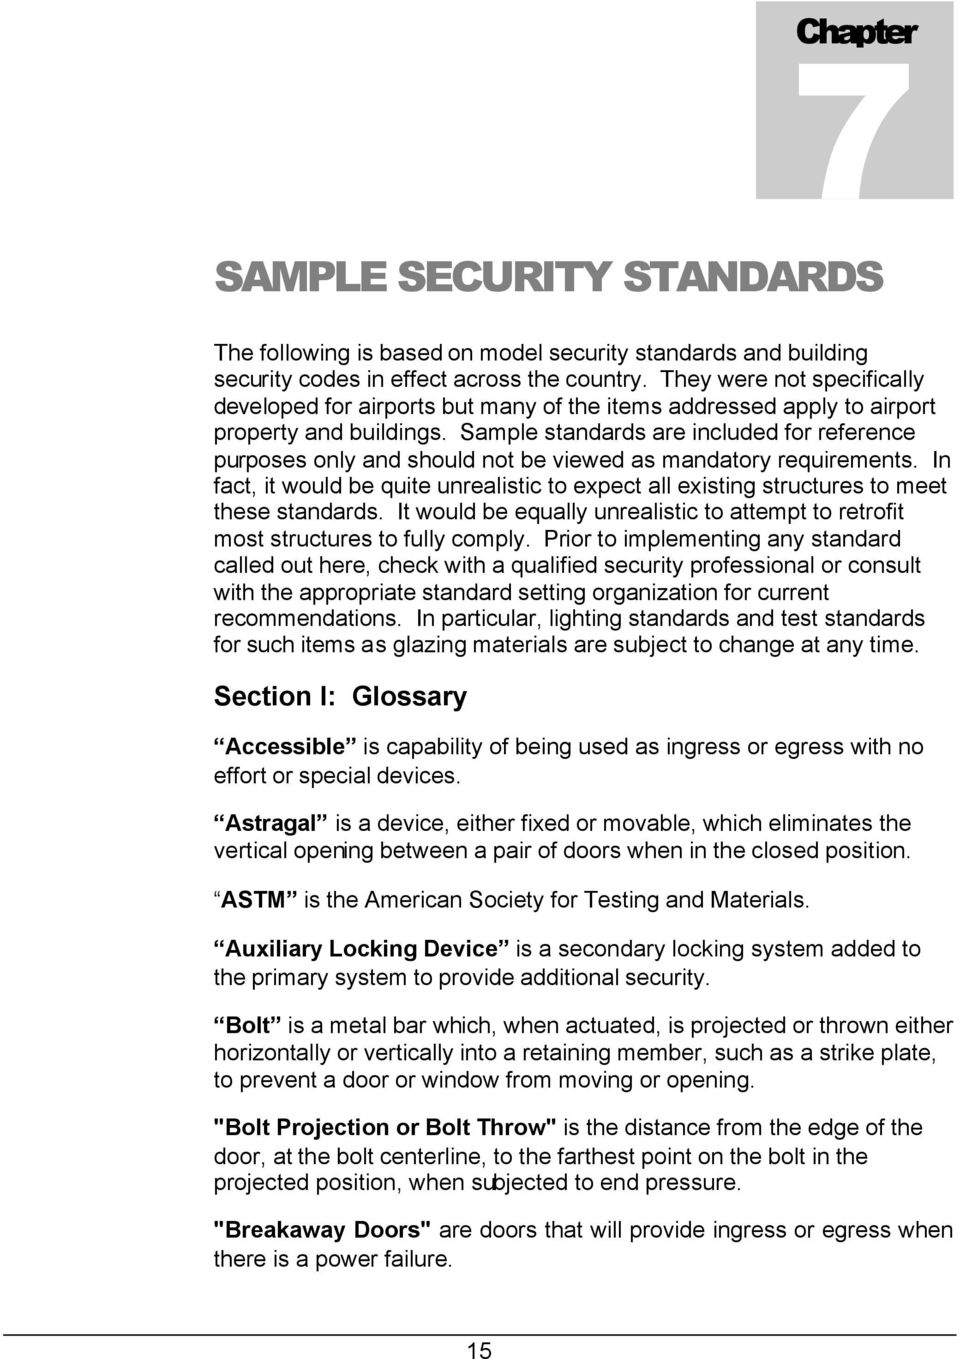 Sample standards are included for reference purposes only and should not be viewed as mandatory requirements.